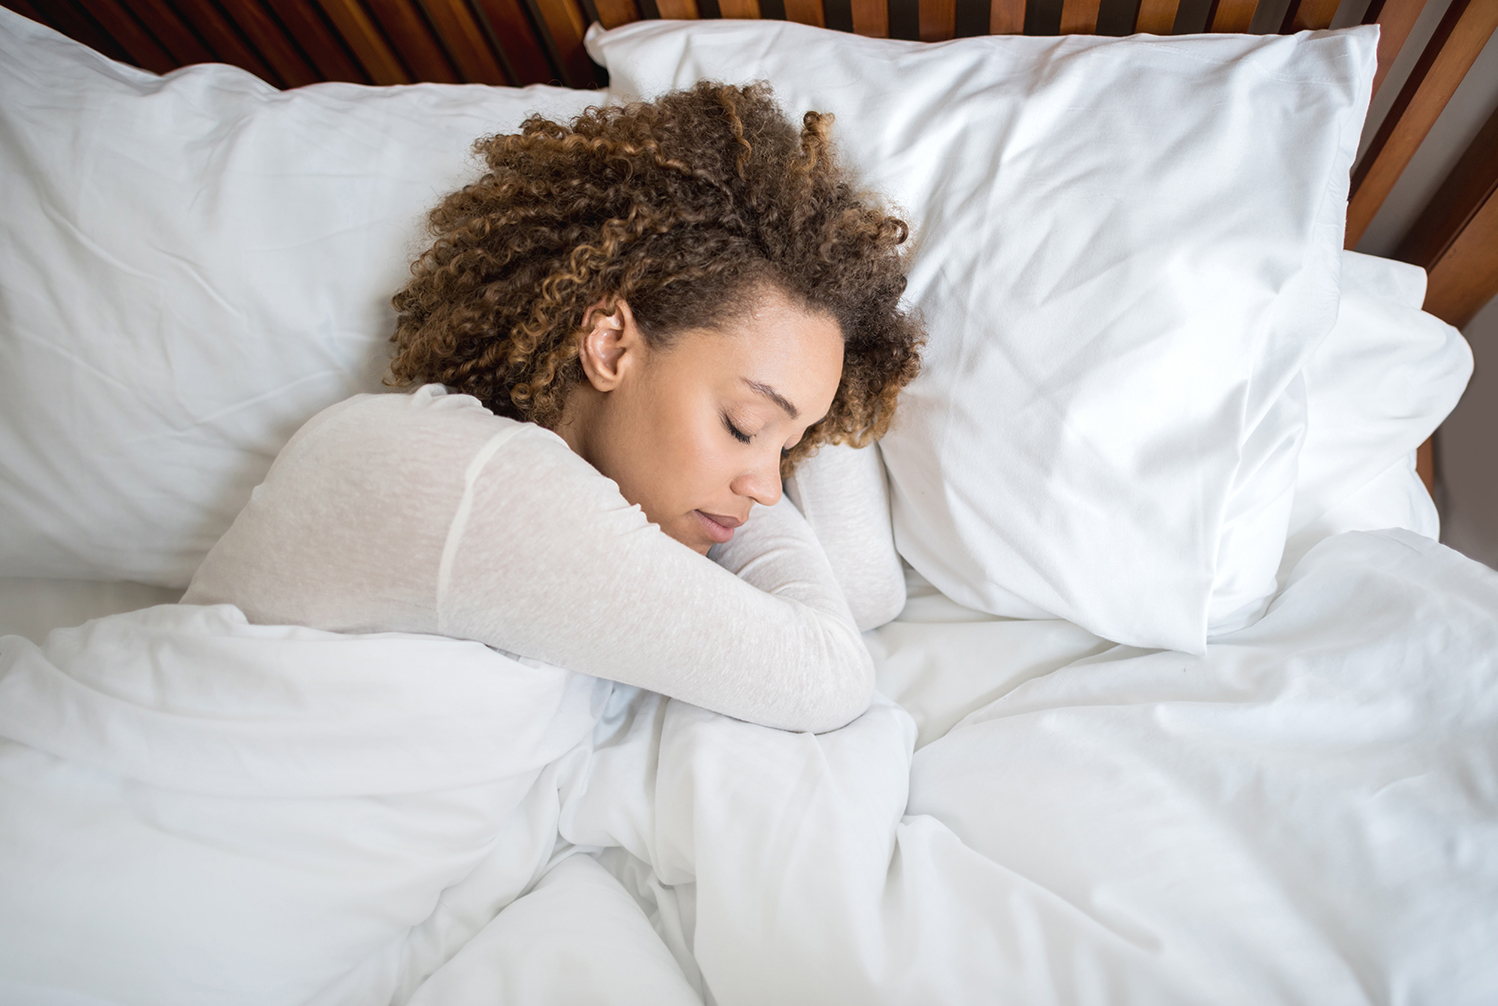 Less Sleep Can Cause Bad Skin